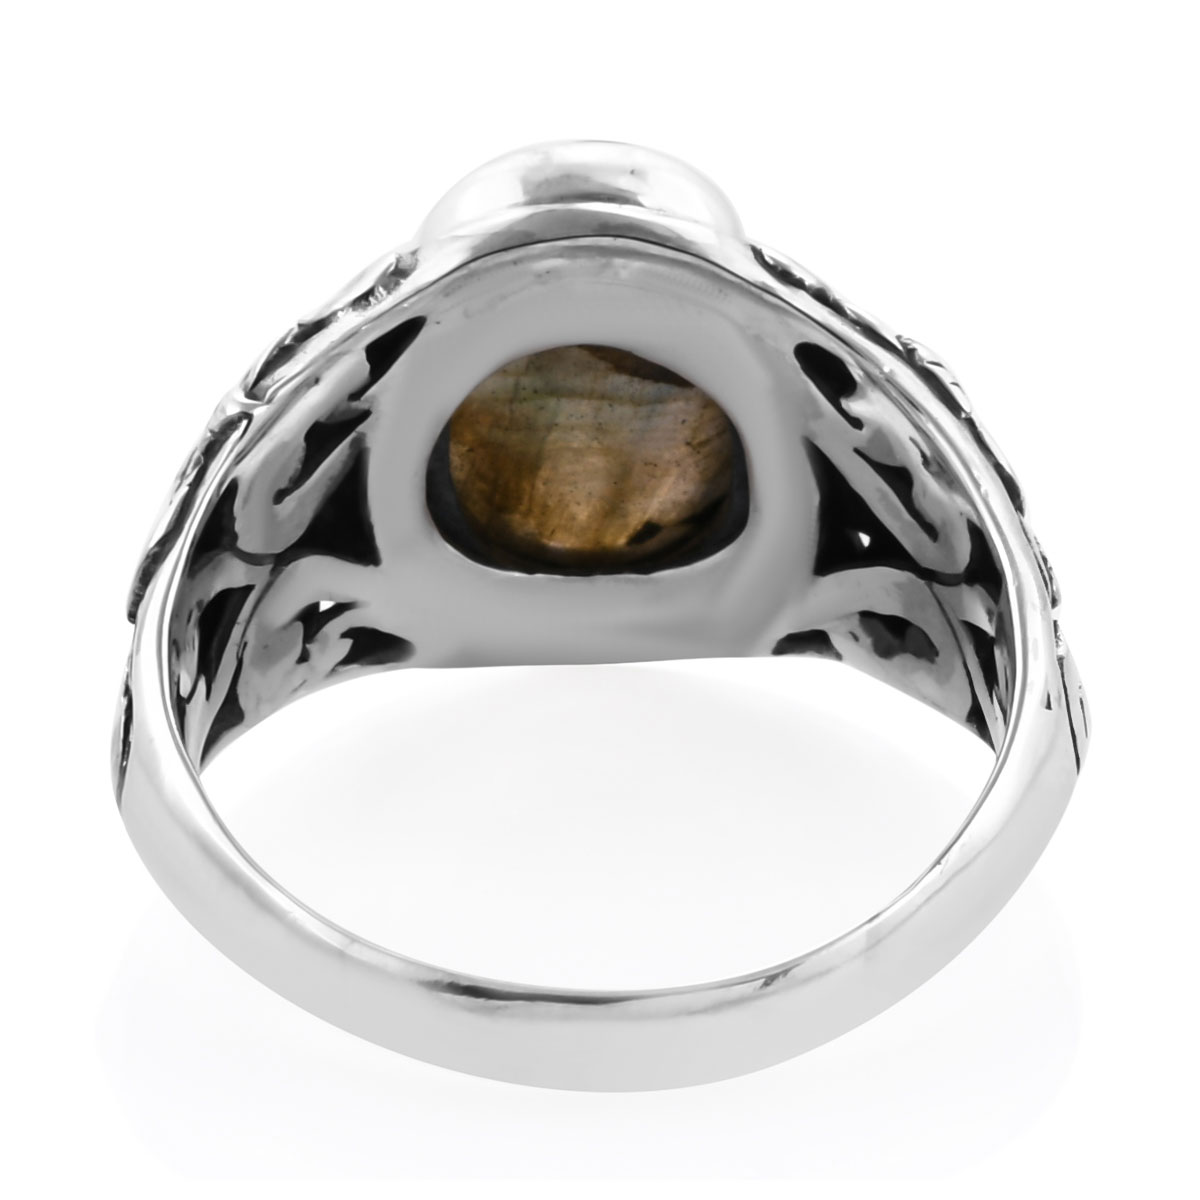 Bali Legacy Malagasy Labradorite Ring in Sterling Silver (Size 11.0) 7.13 ctw